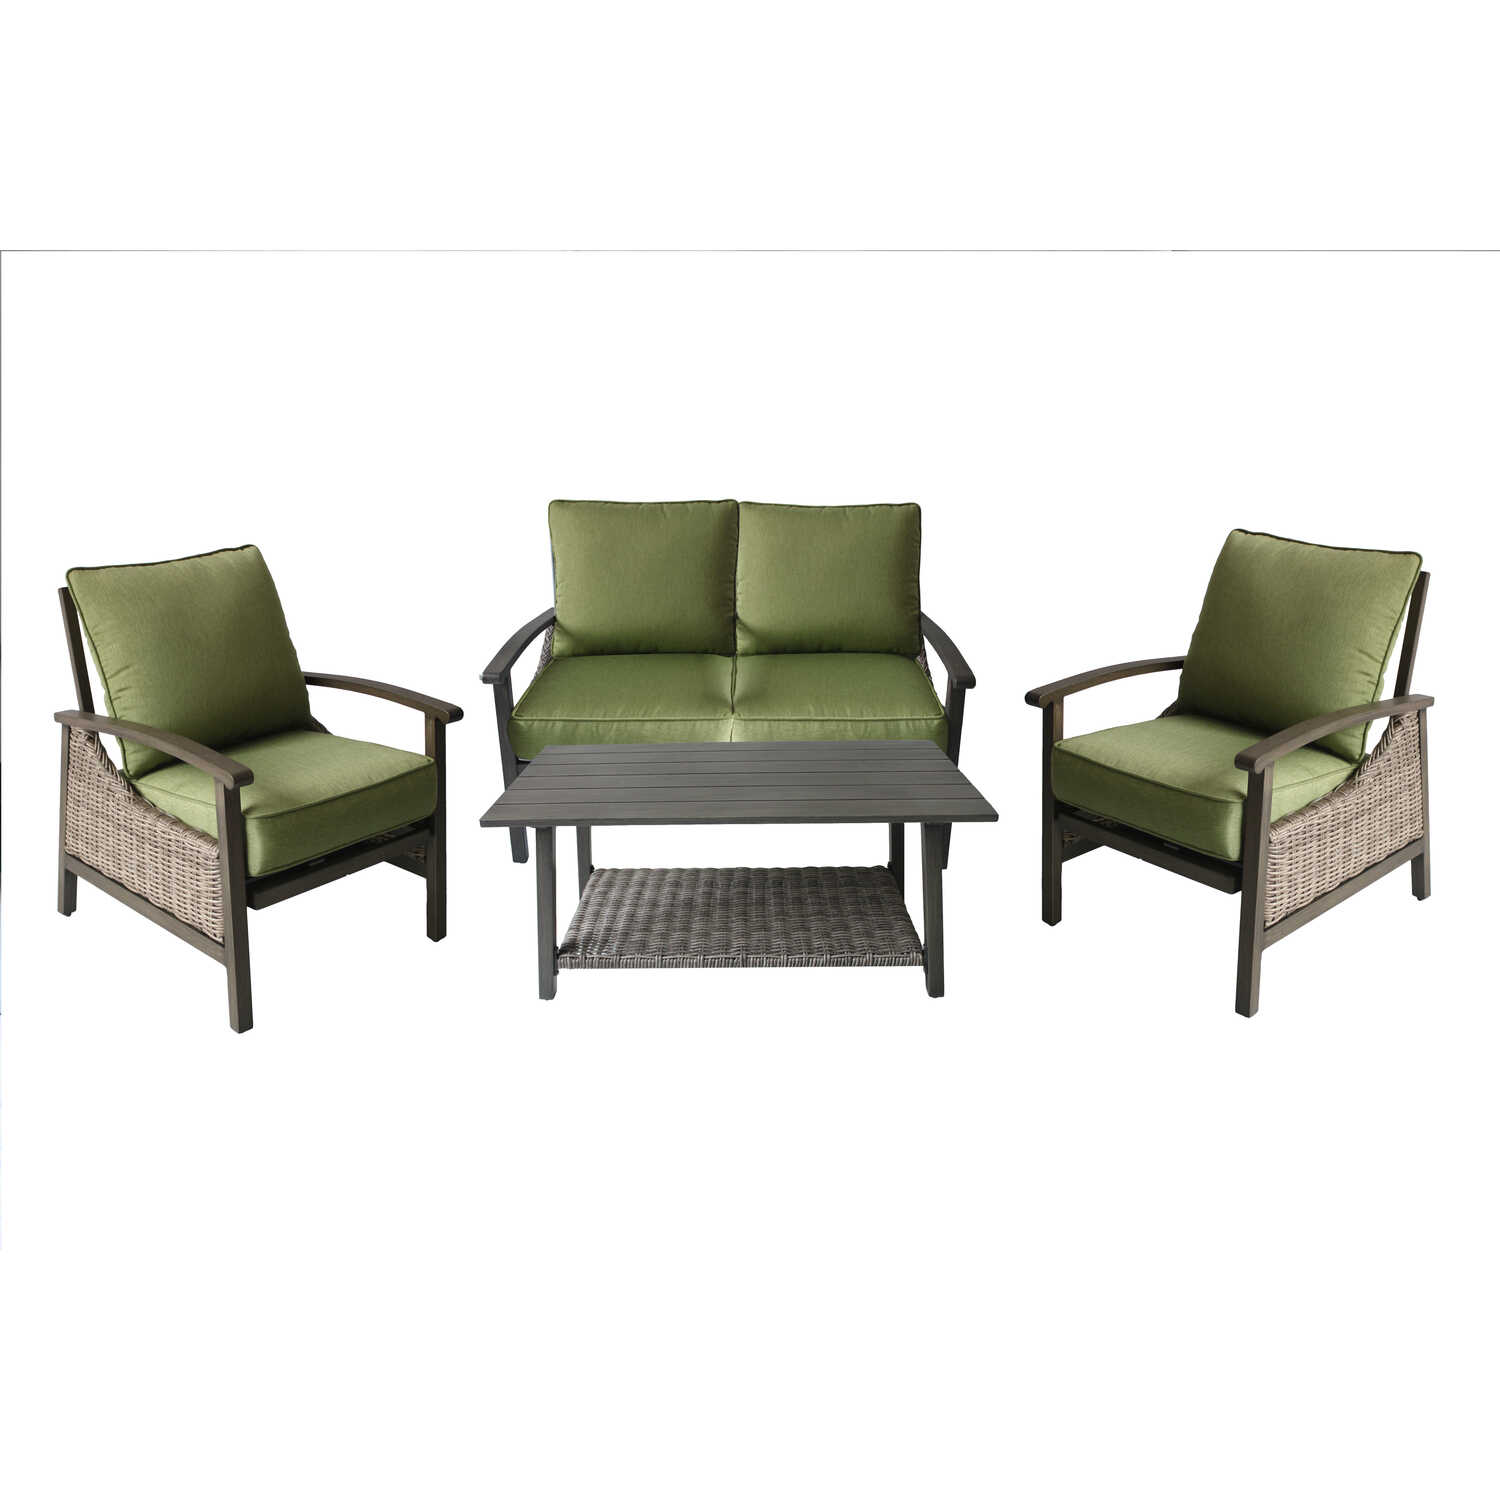 Living Accents  Soho Deep Seating  4 pc. Aluminum  Patio Set  Green